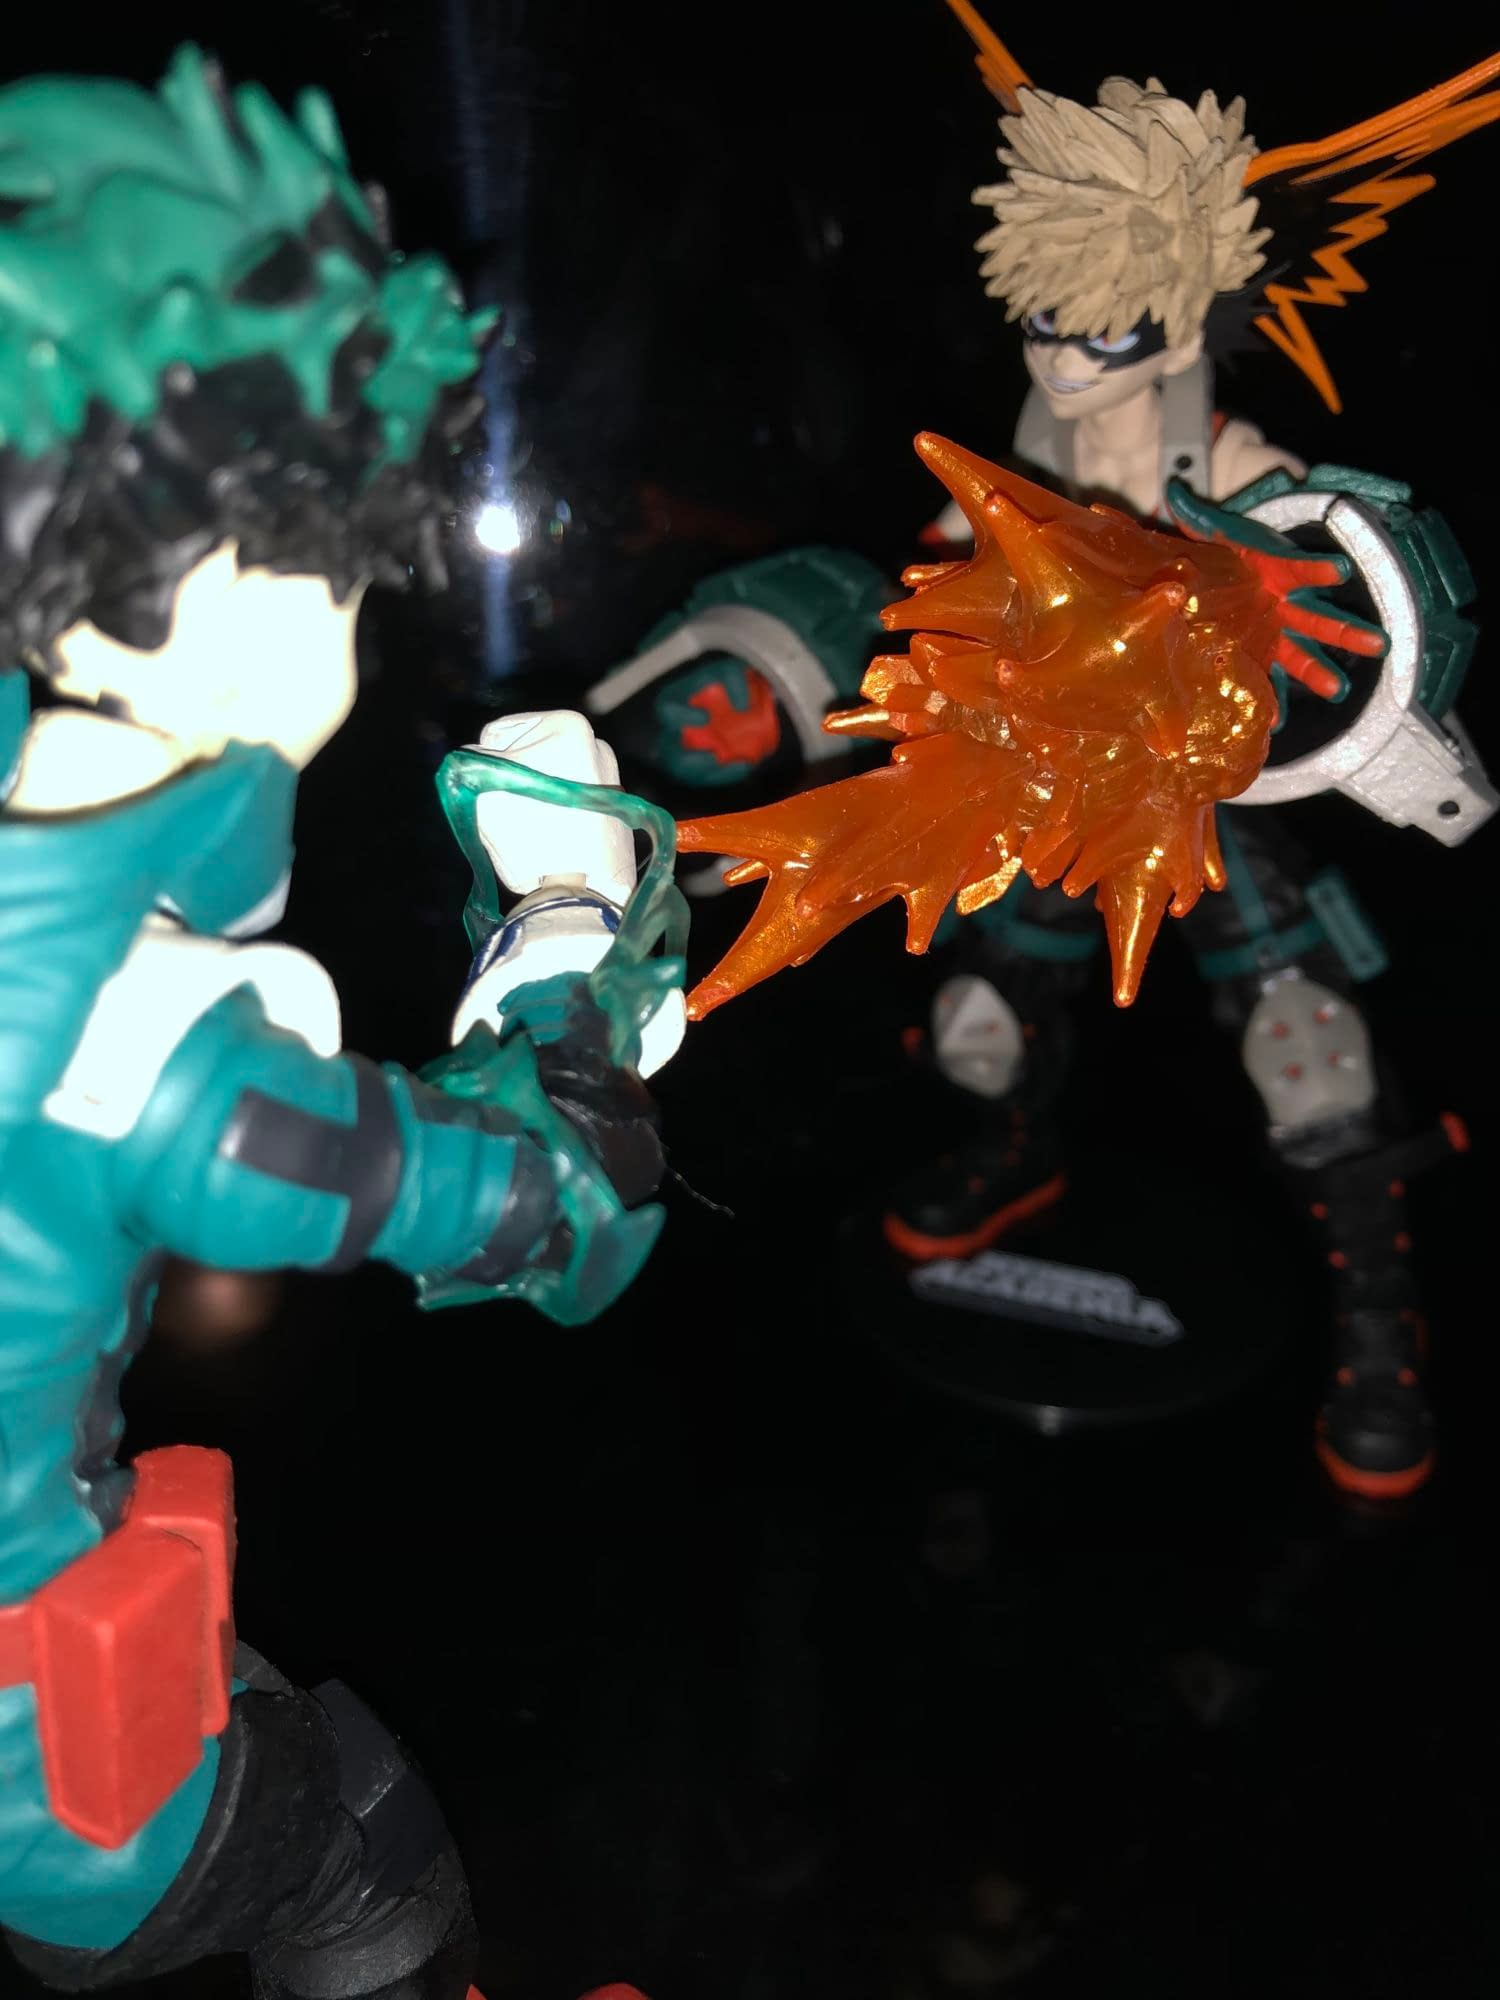 My Hero Academia McFarlane Toys Toy of the Year Nominee [Review]